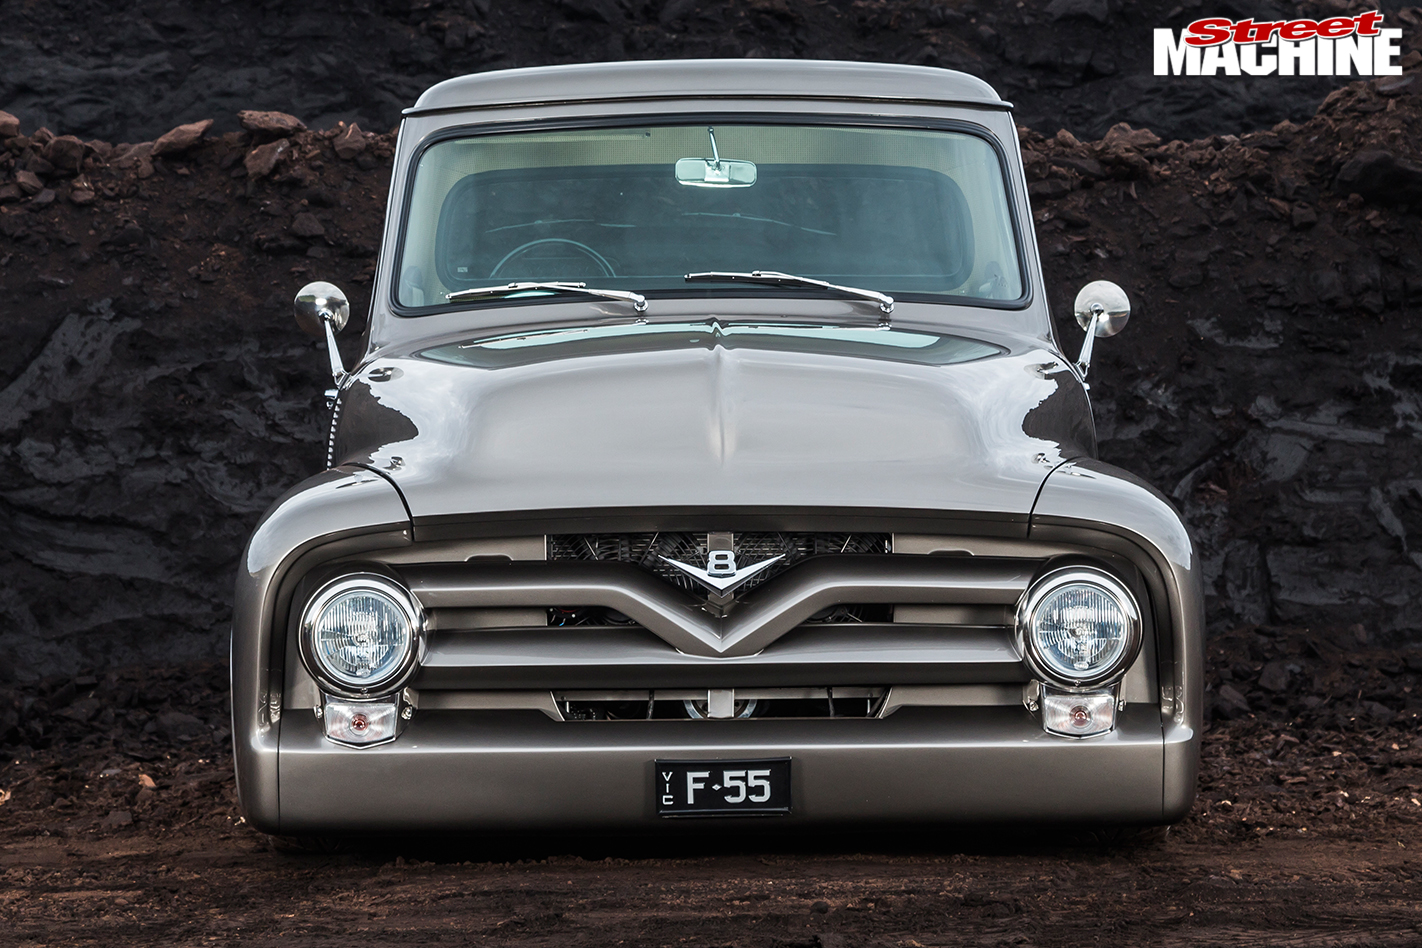 800hp Big Block 1955 Ford F100 Pickup Specifications Front